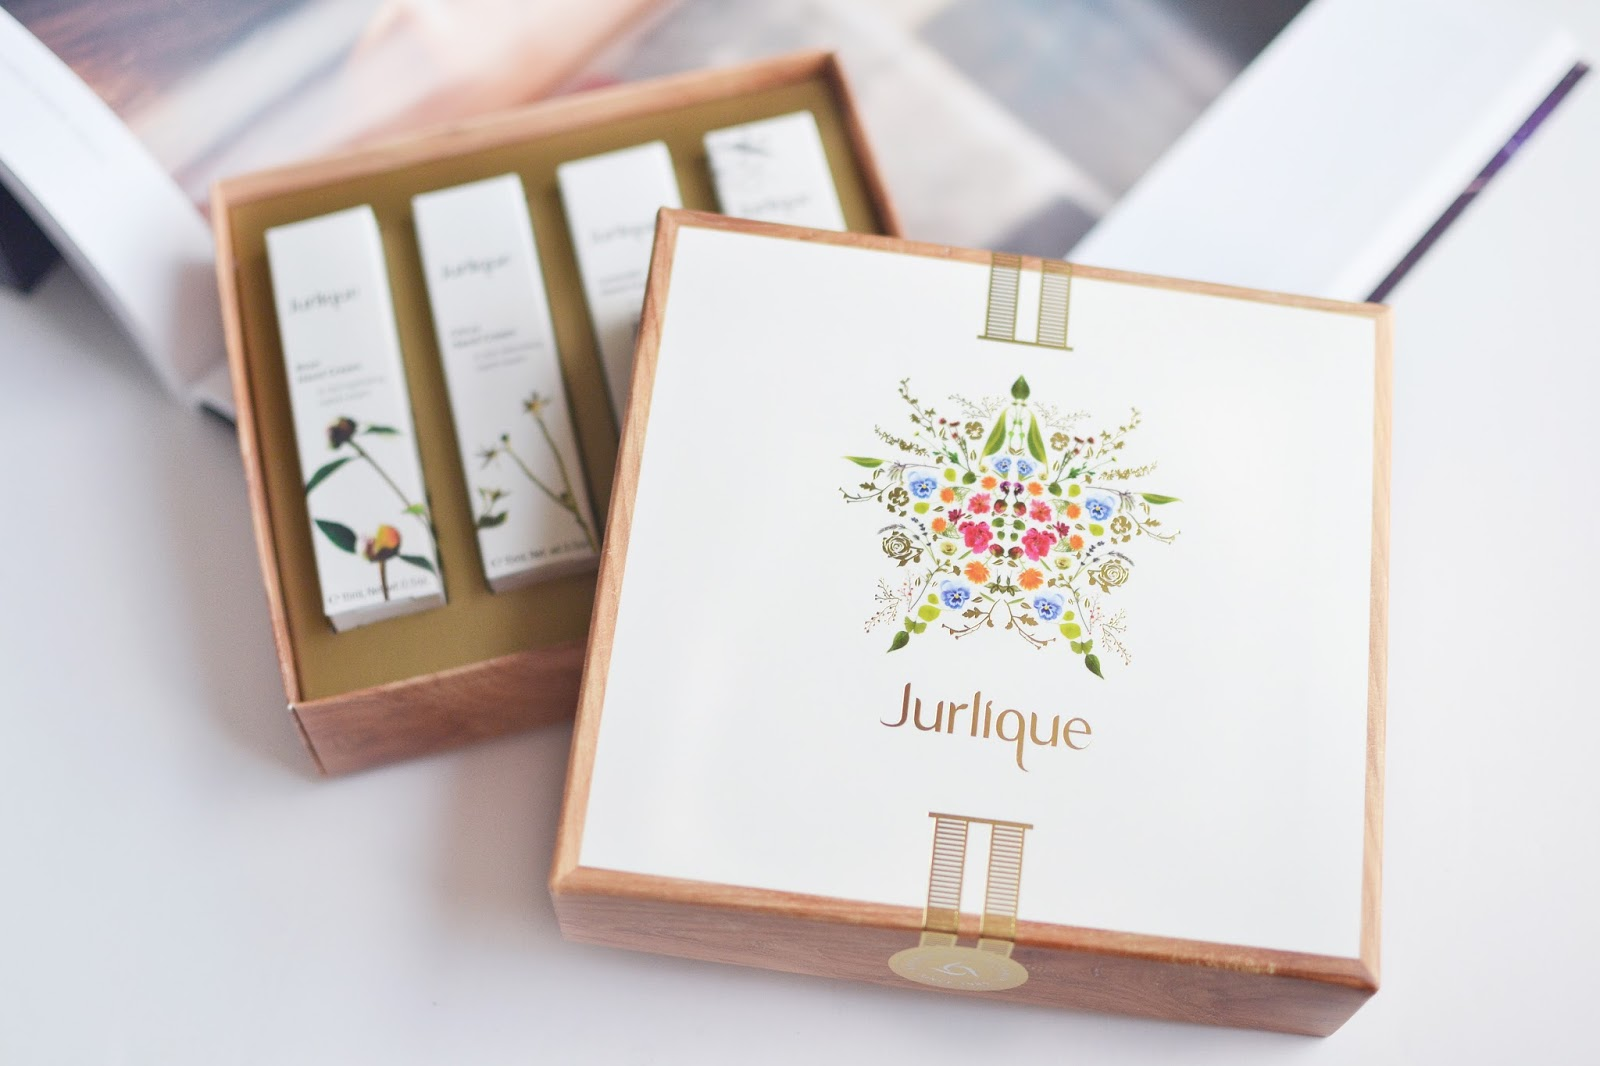 jurlique beauty products, beauty gift sets